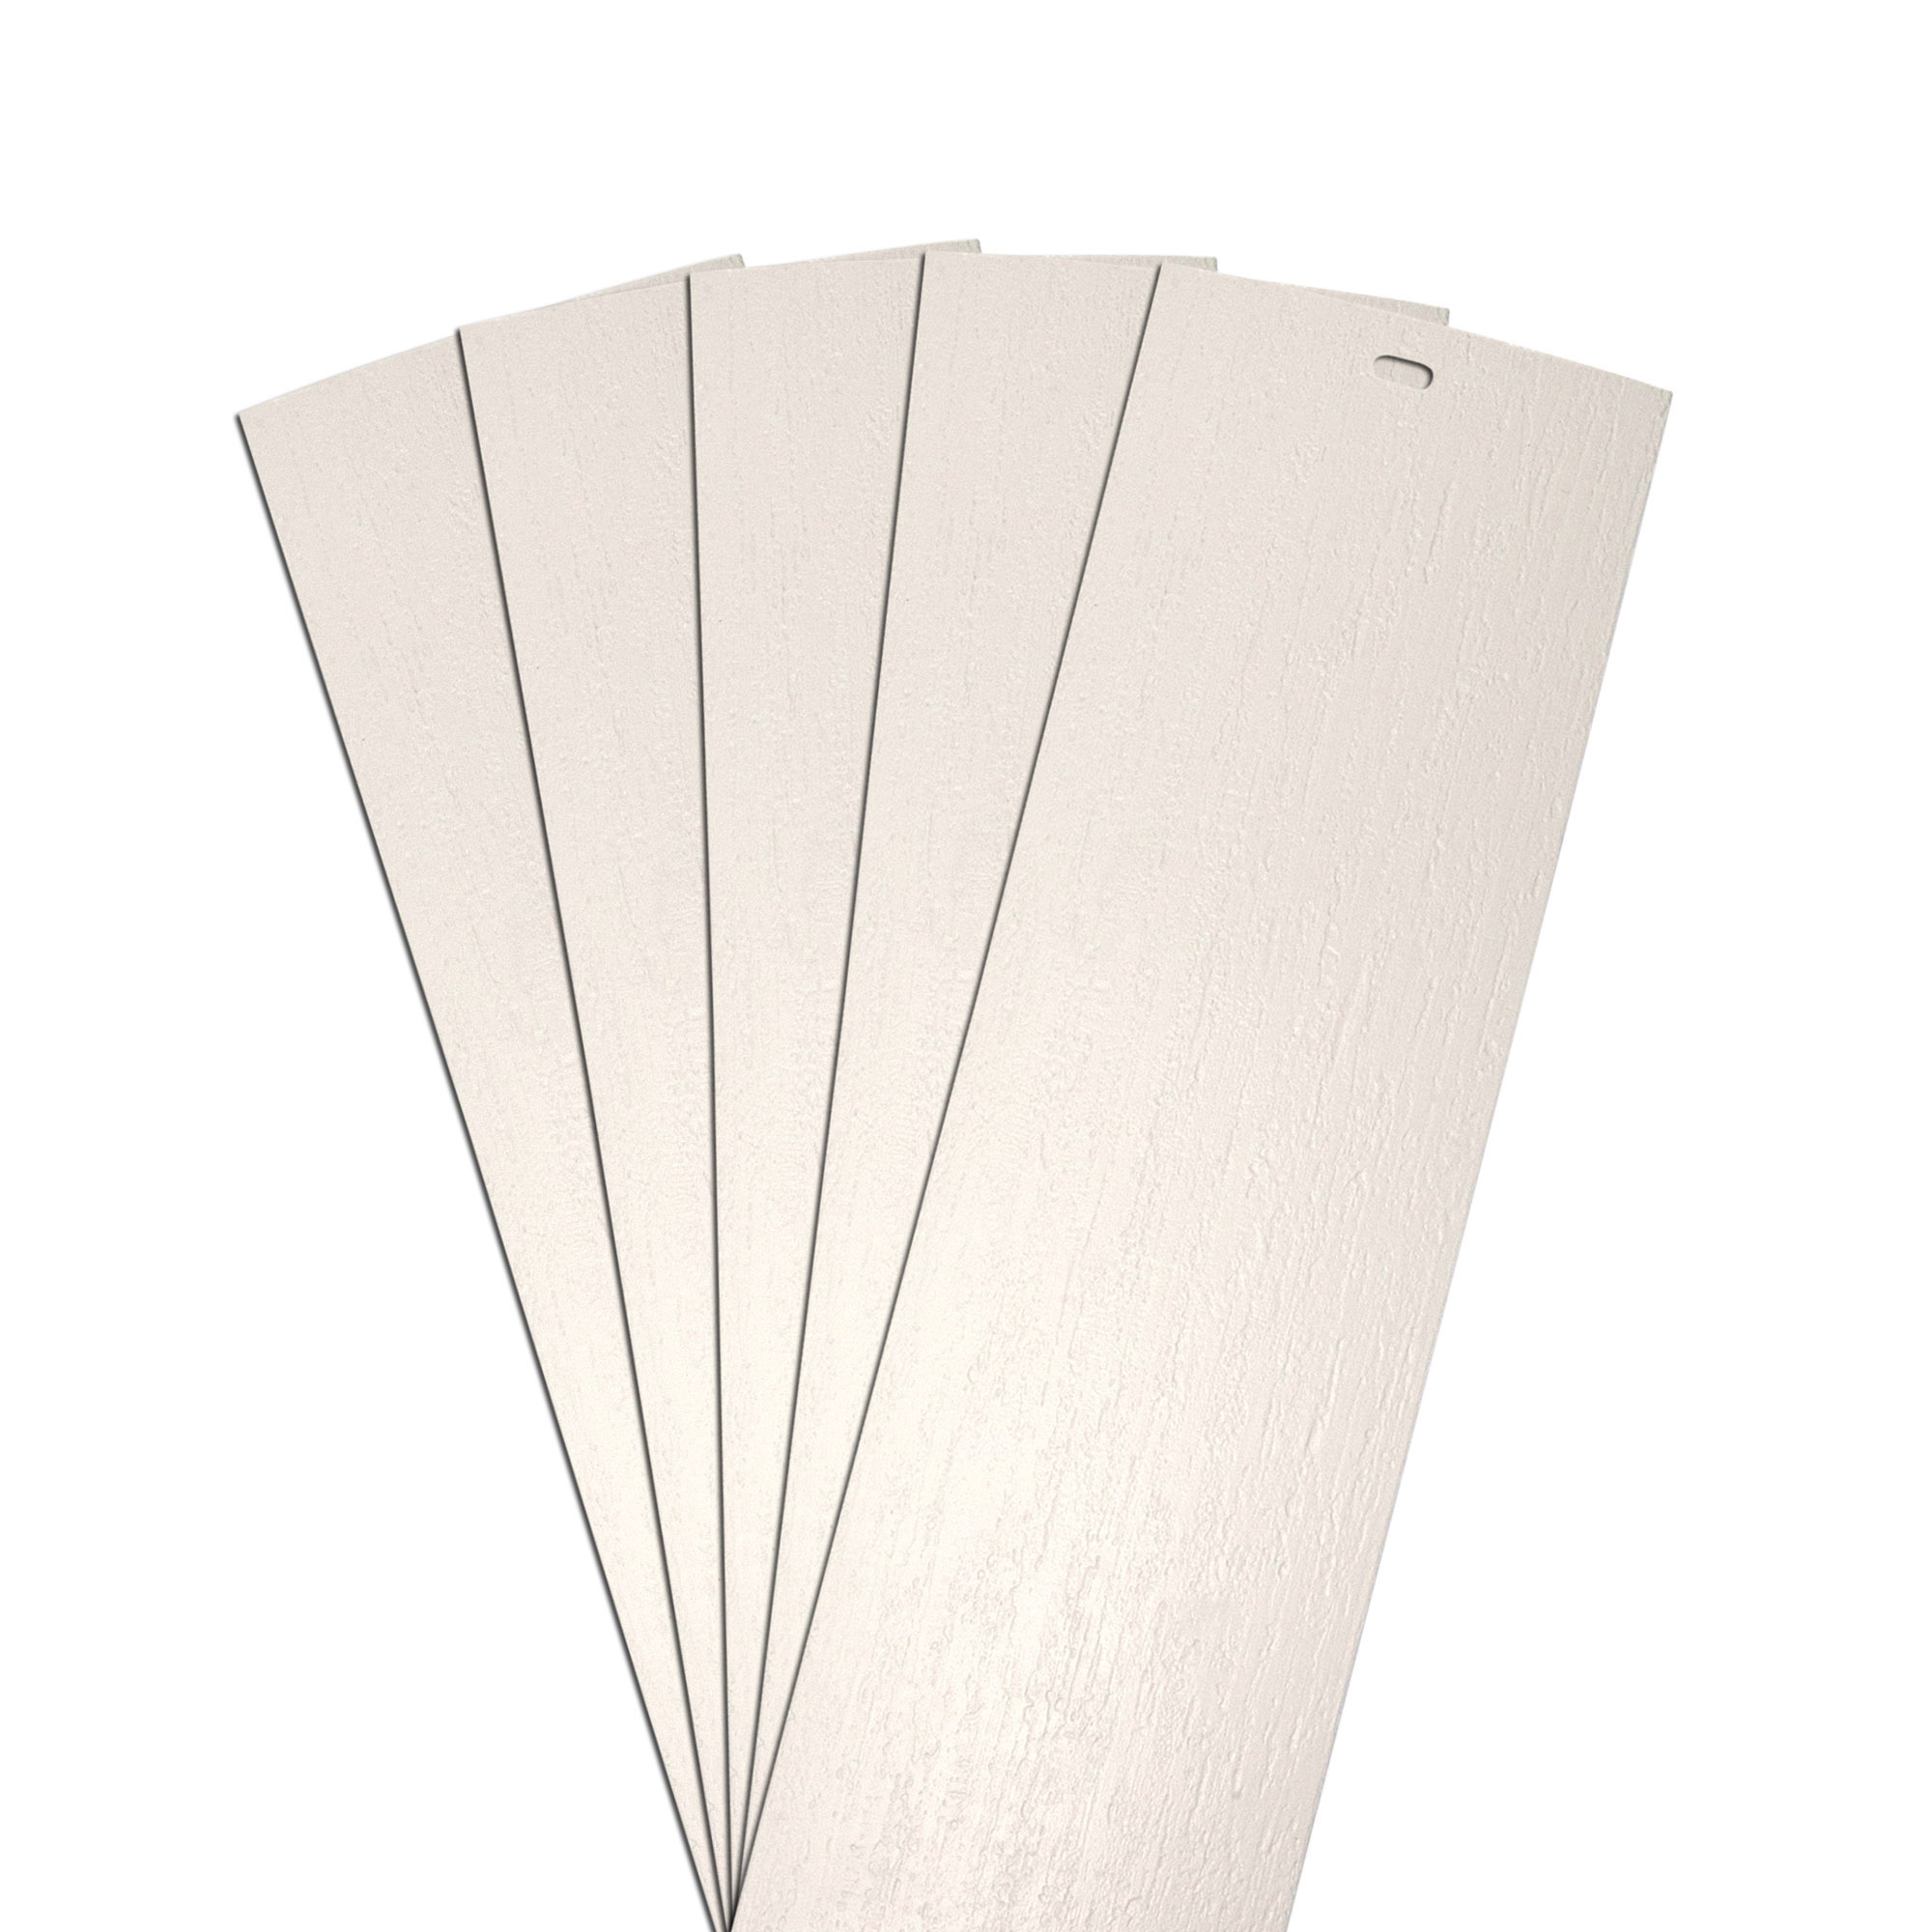 Dalix Rustic Vertical Blinds Slats Replacement Set Ivory